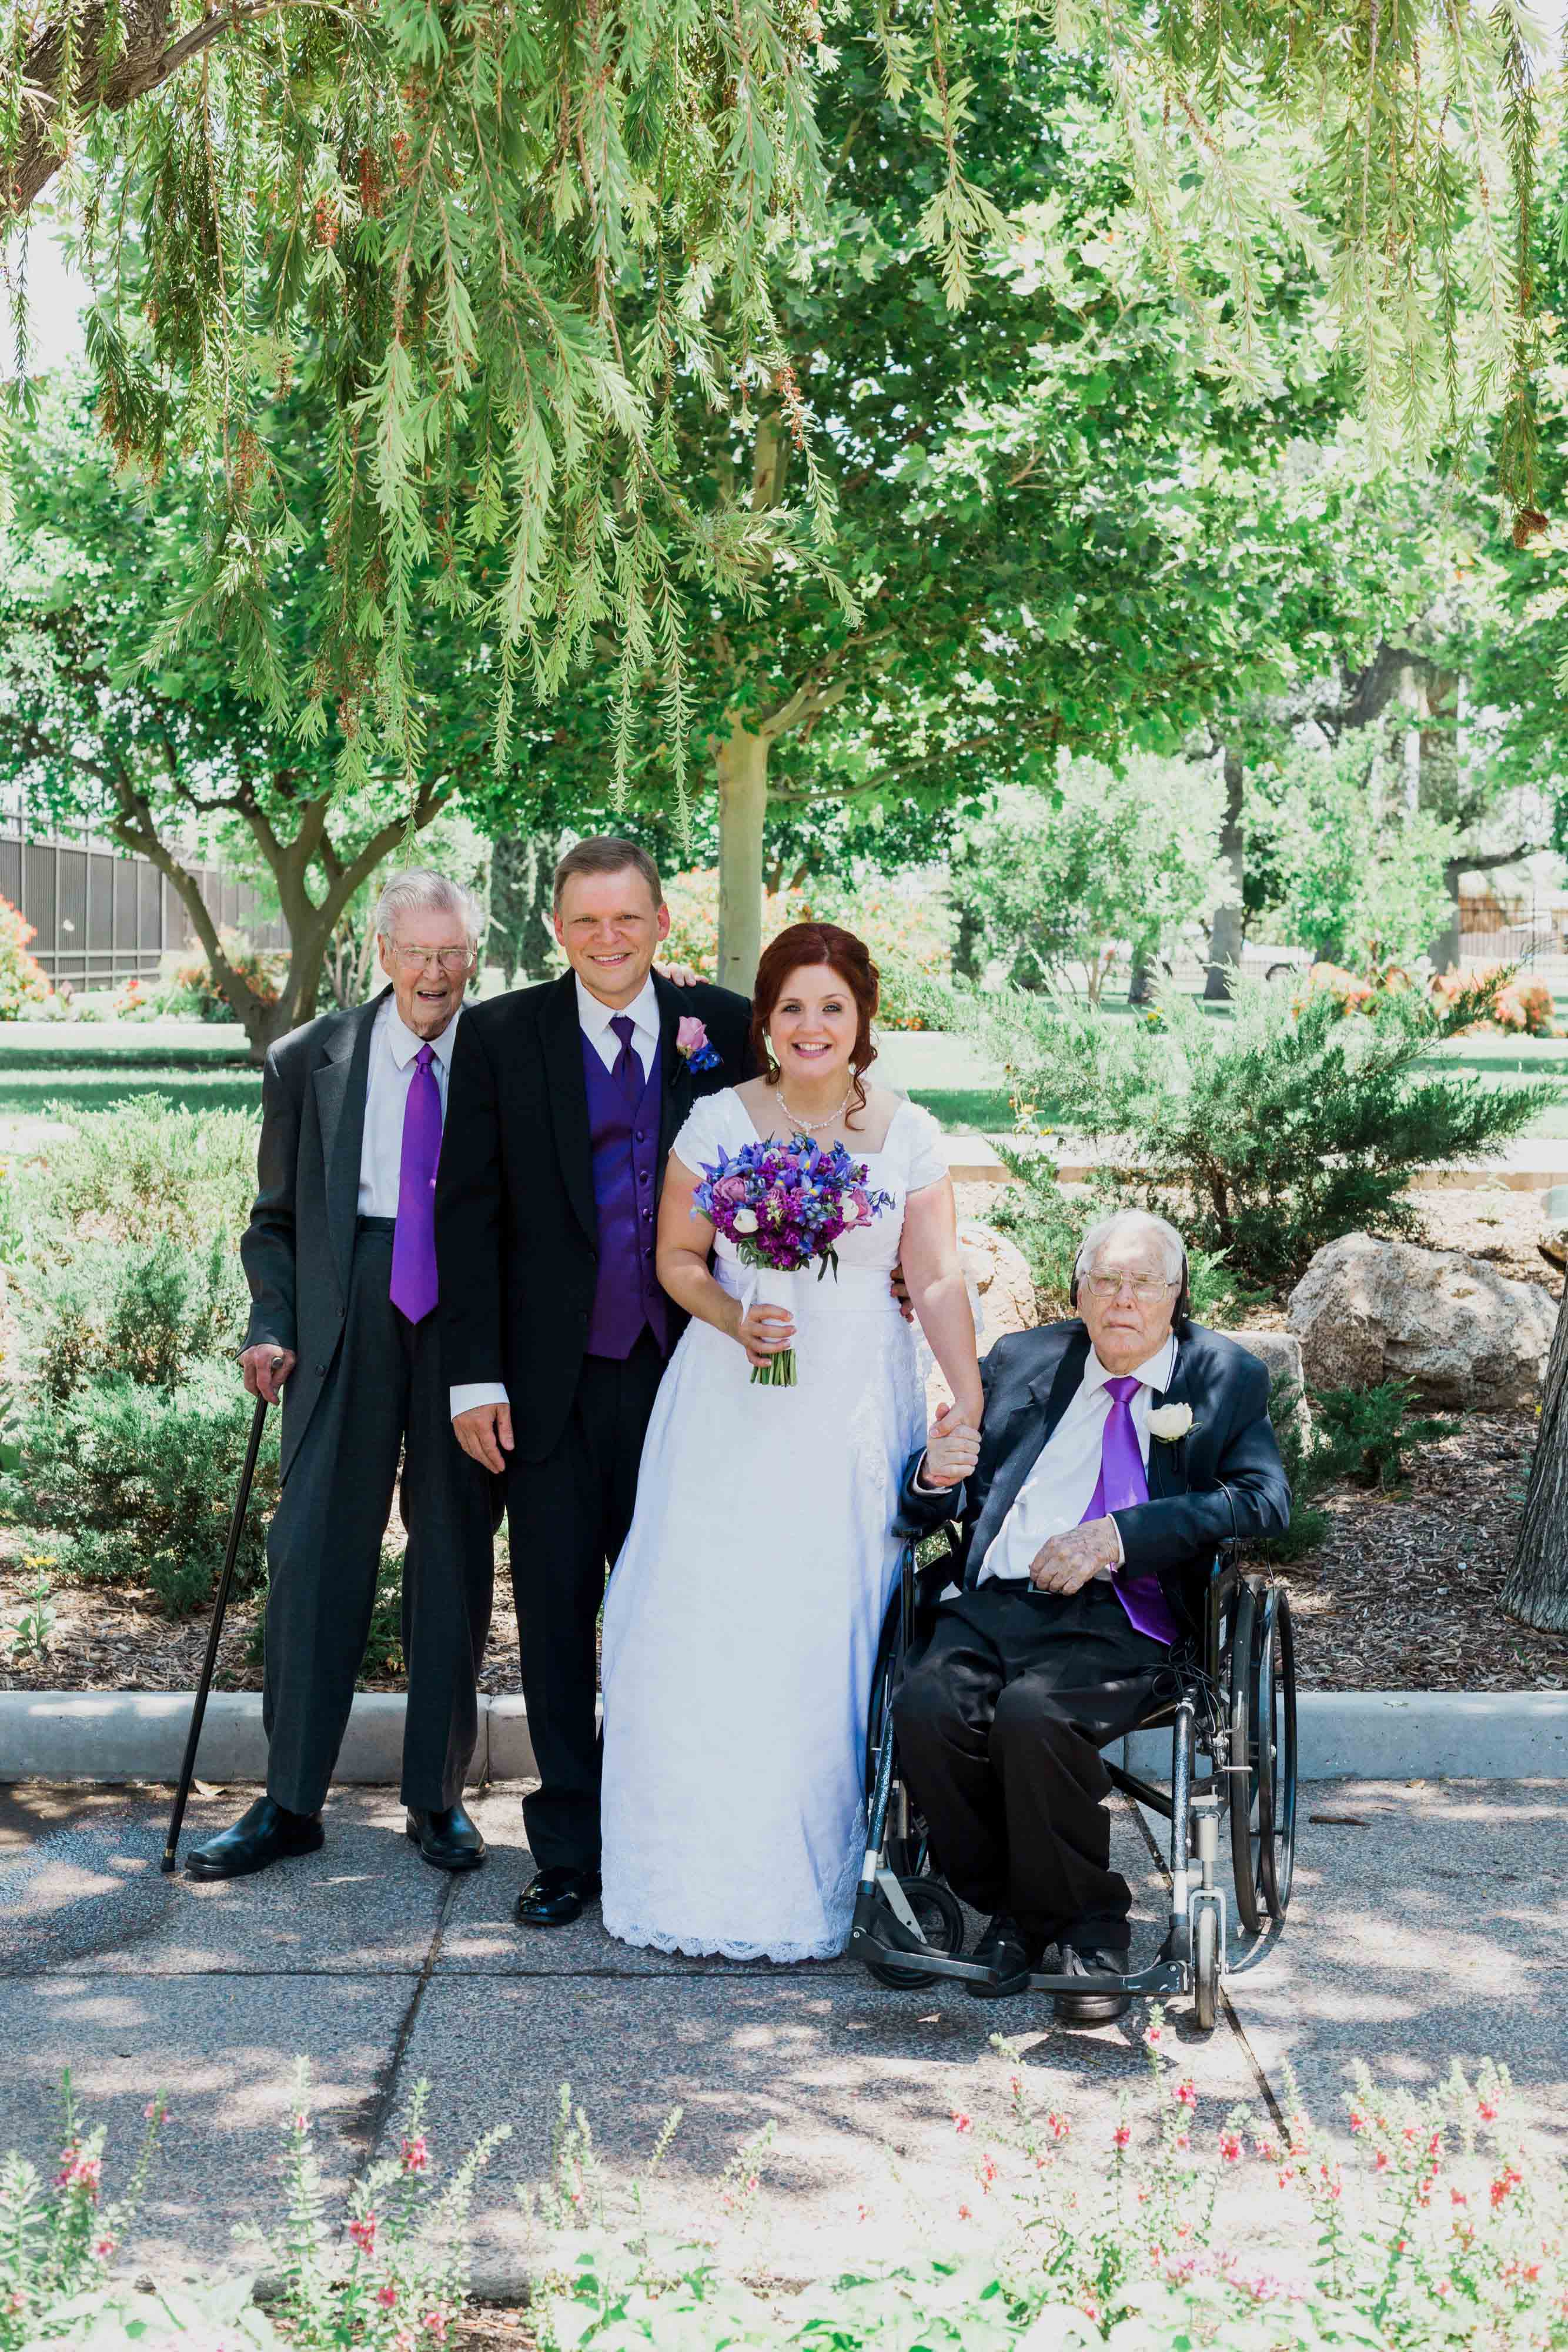 Wedding Of Century The Happy Couple With Their Grandfathers: (from Left) Thomas Flenniken (age 102); Groom, David Barker; Bride, Christina Henrie; And Don Zundel (age 101.) Photo By Genevieve Hansen Photography